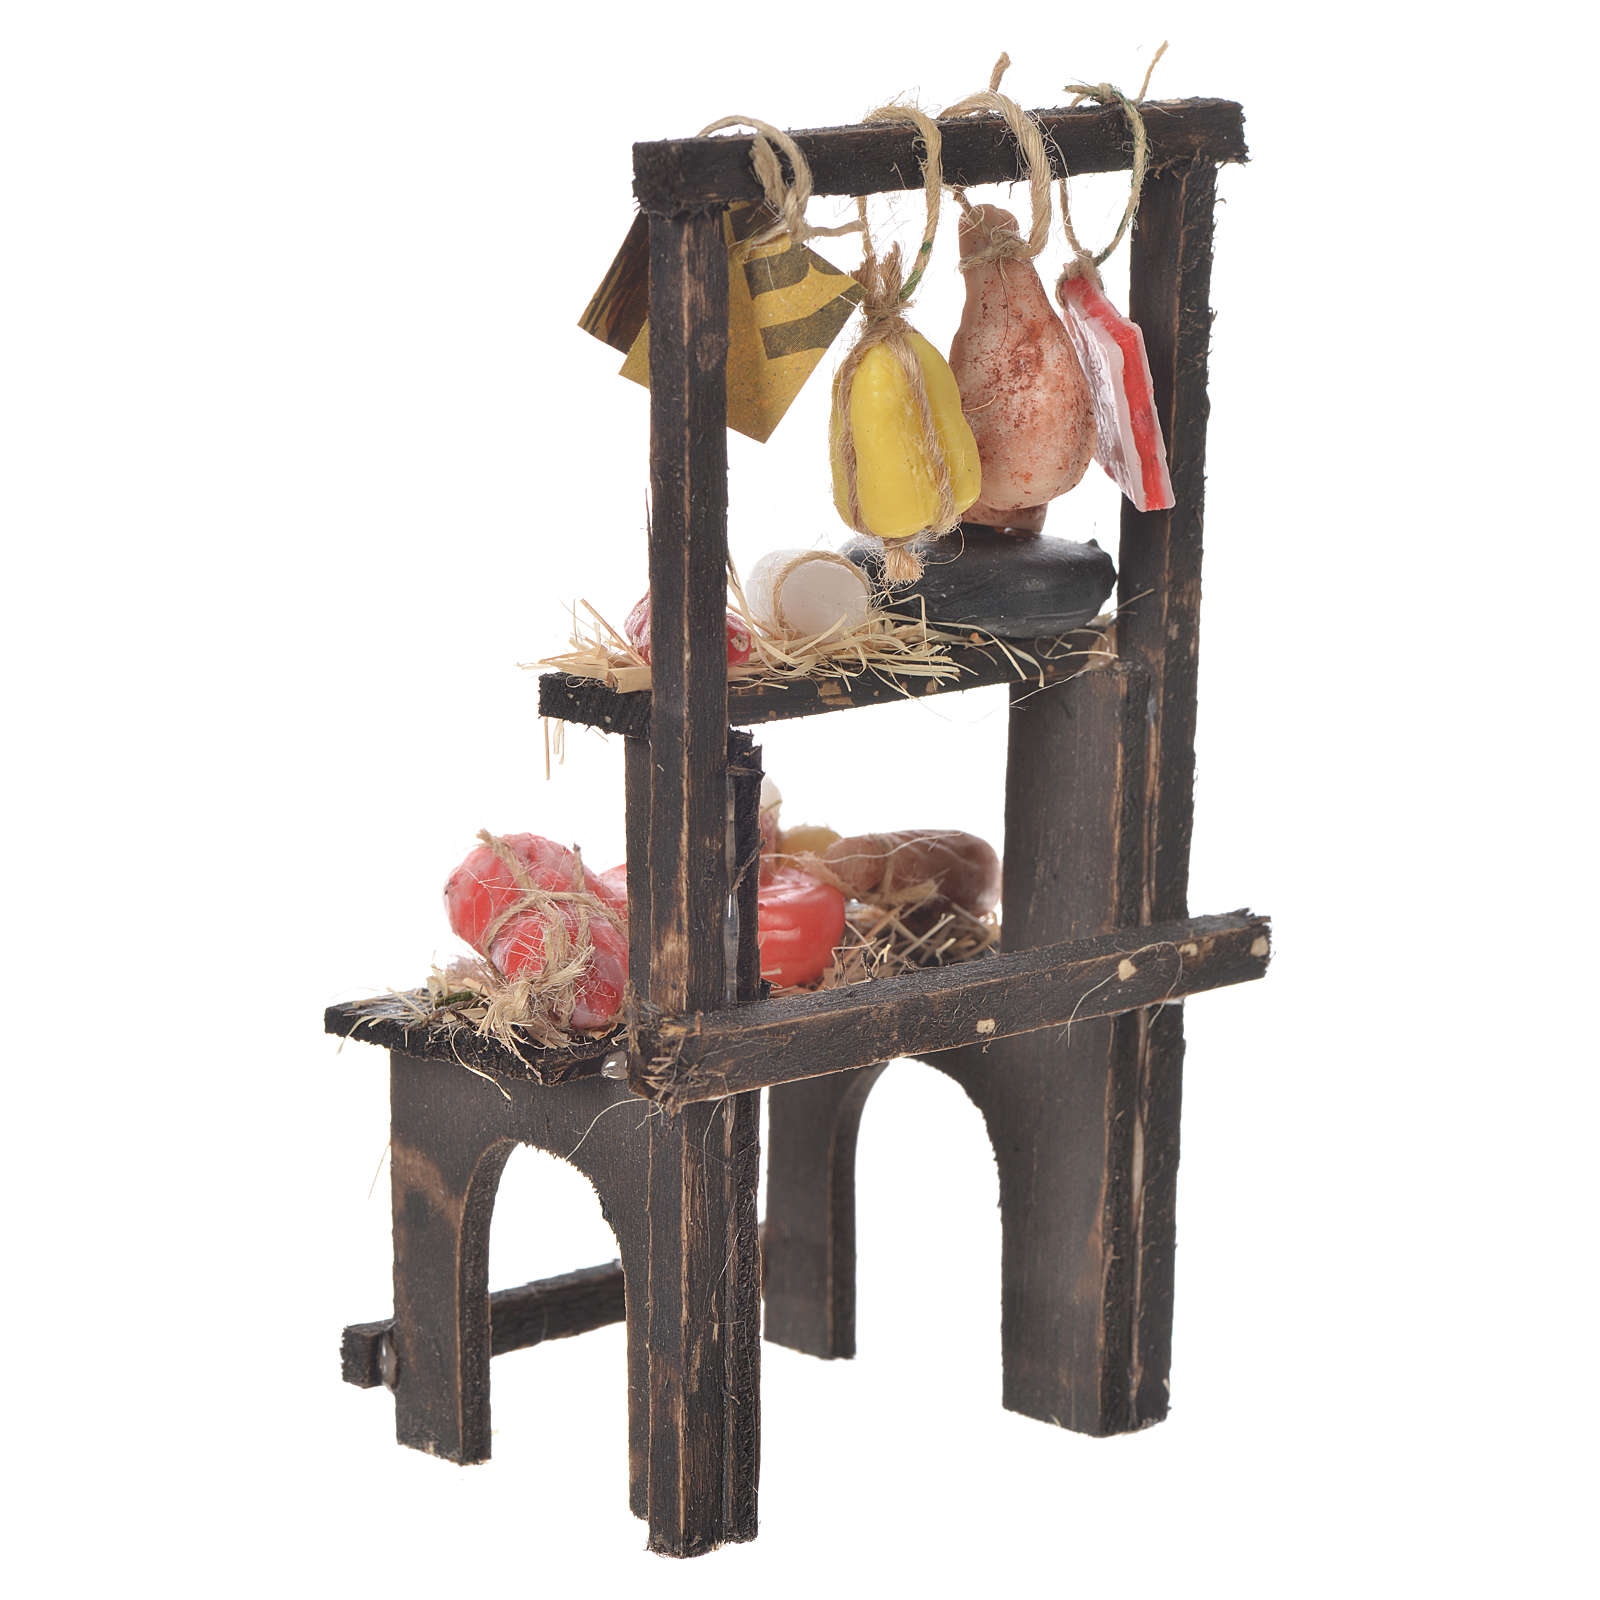 Butcher's stall in wax, 13.5x8x5.5cm 4